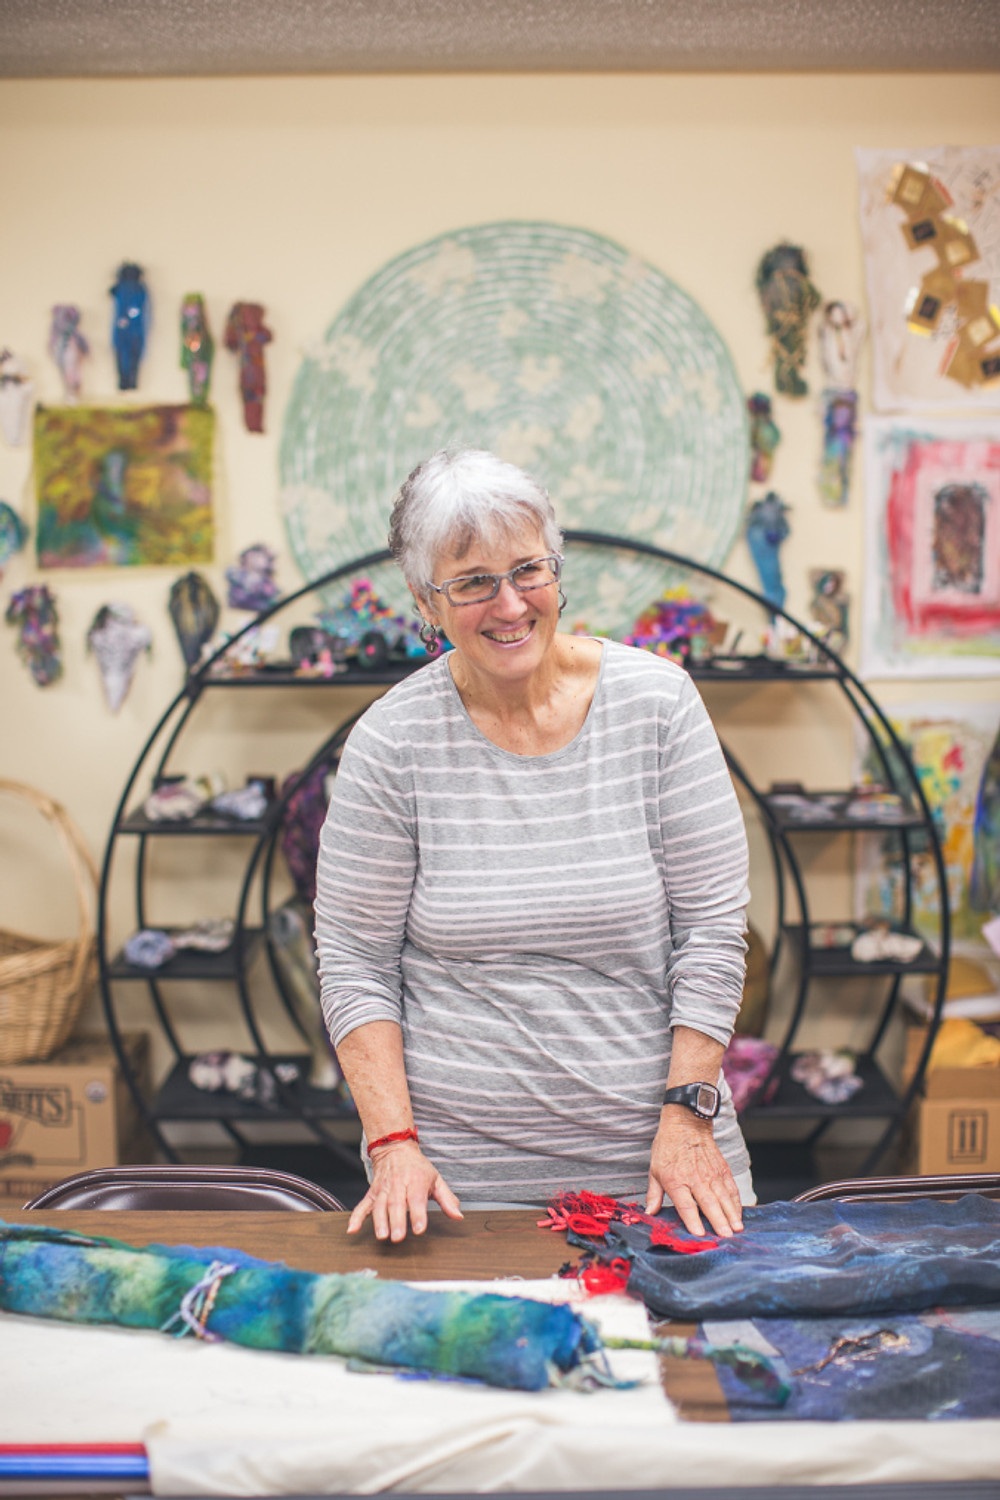 Barbetta Lockart in her studio surrounded by her gorgeous textile art.